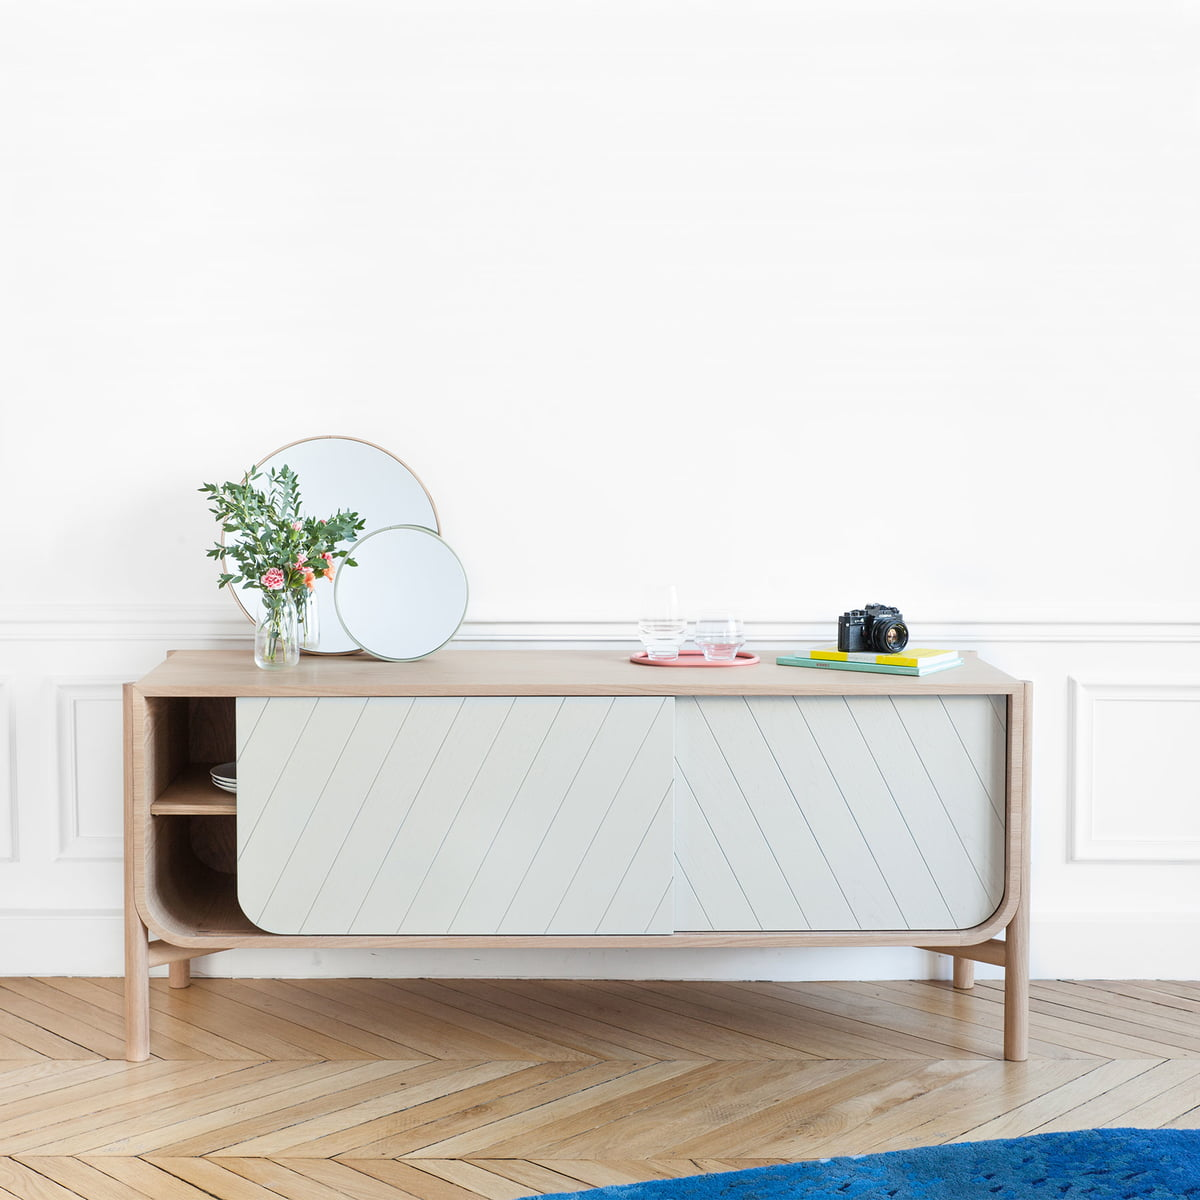 Buy The Marius Sideboard By Hart In The Design Shop